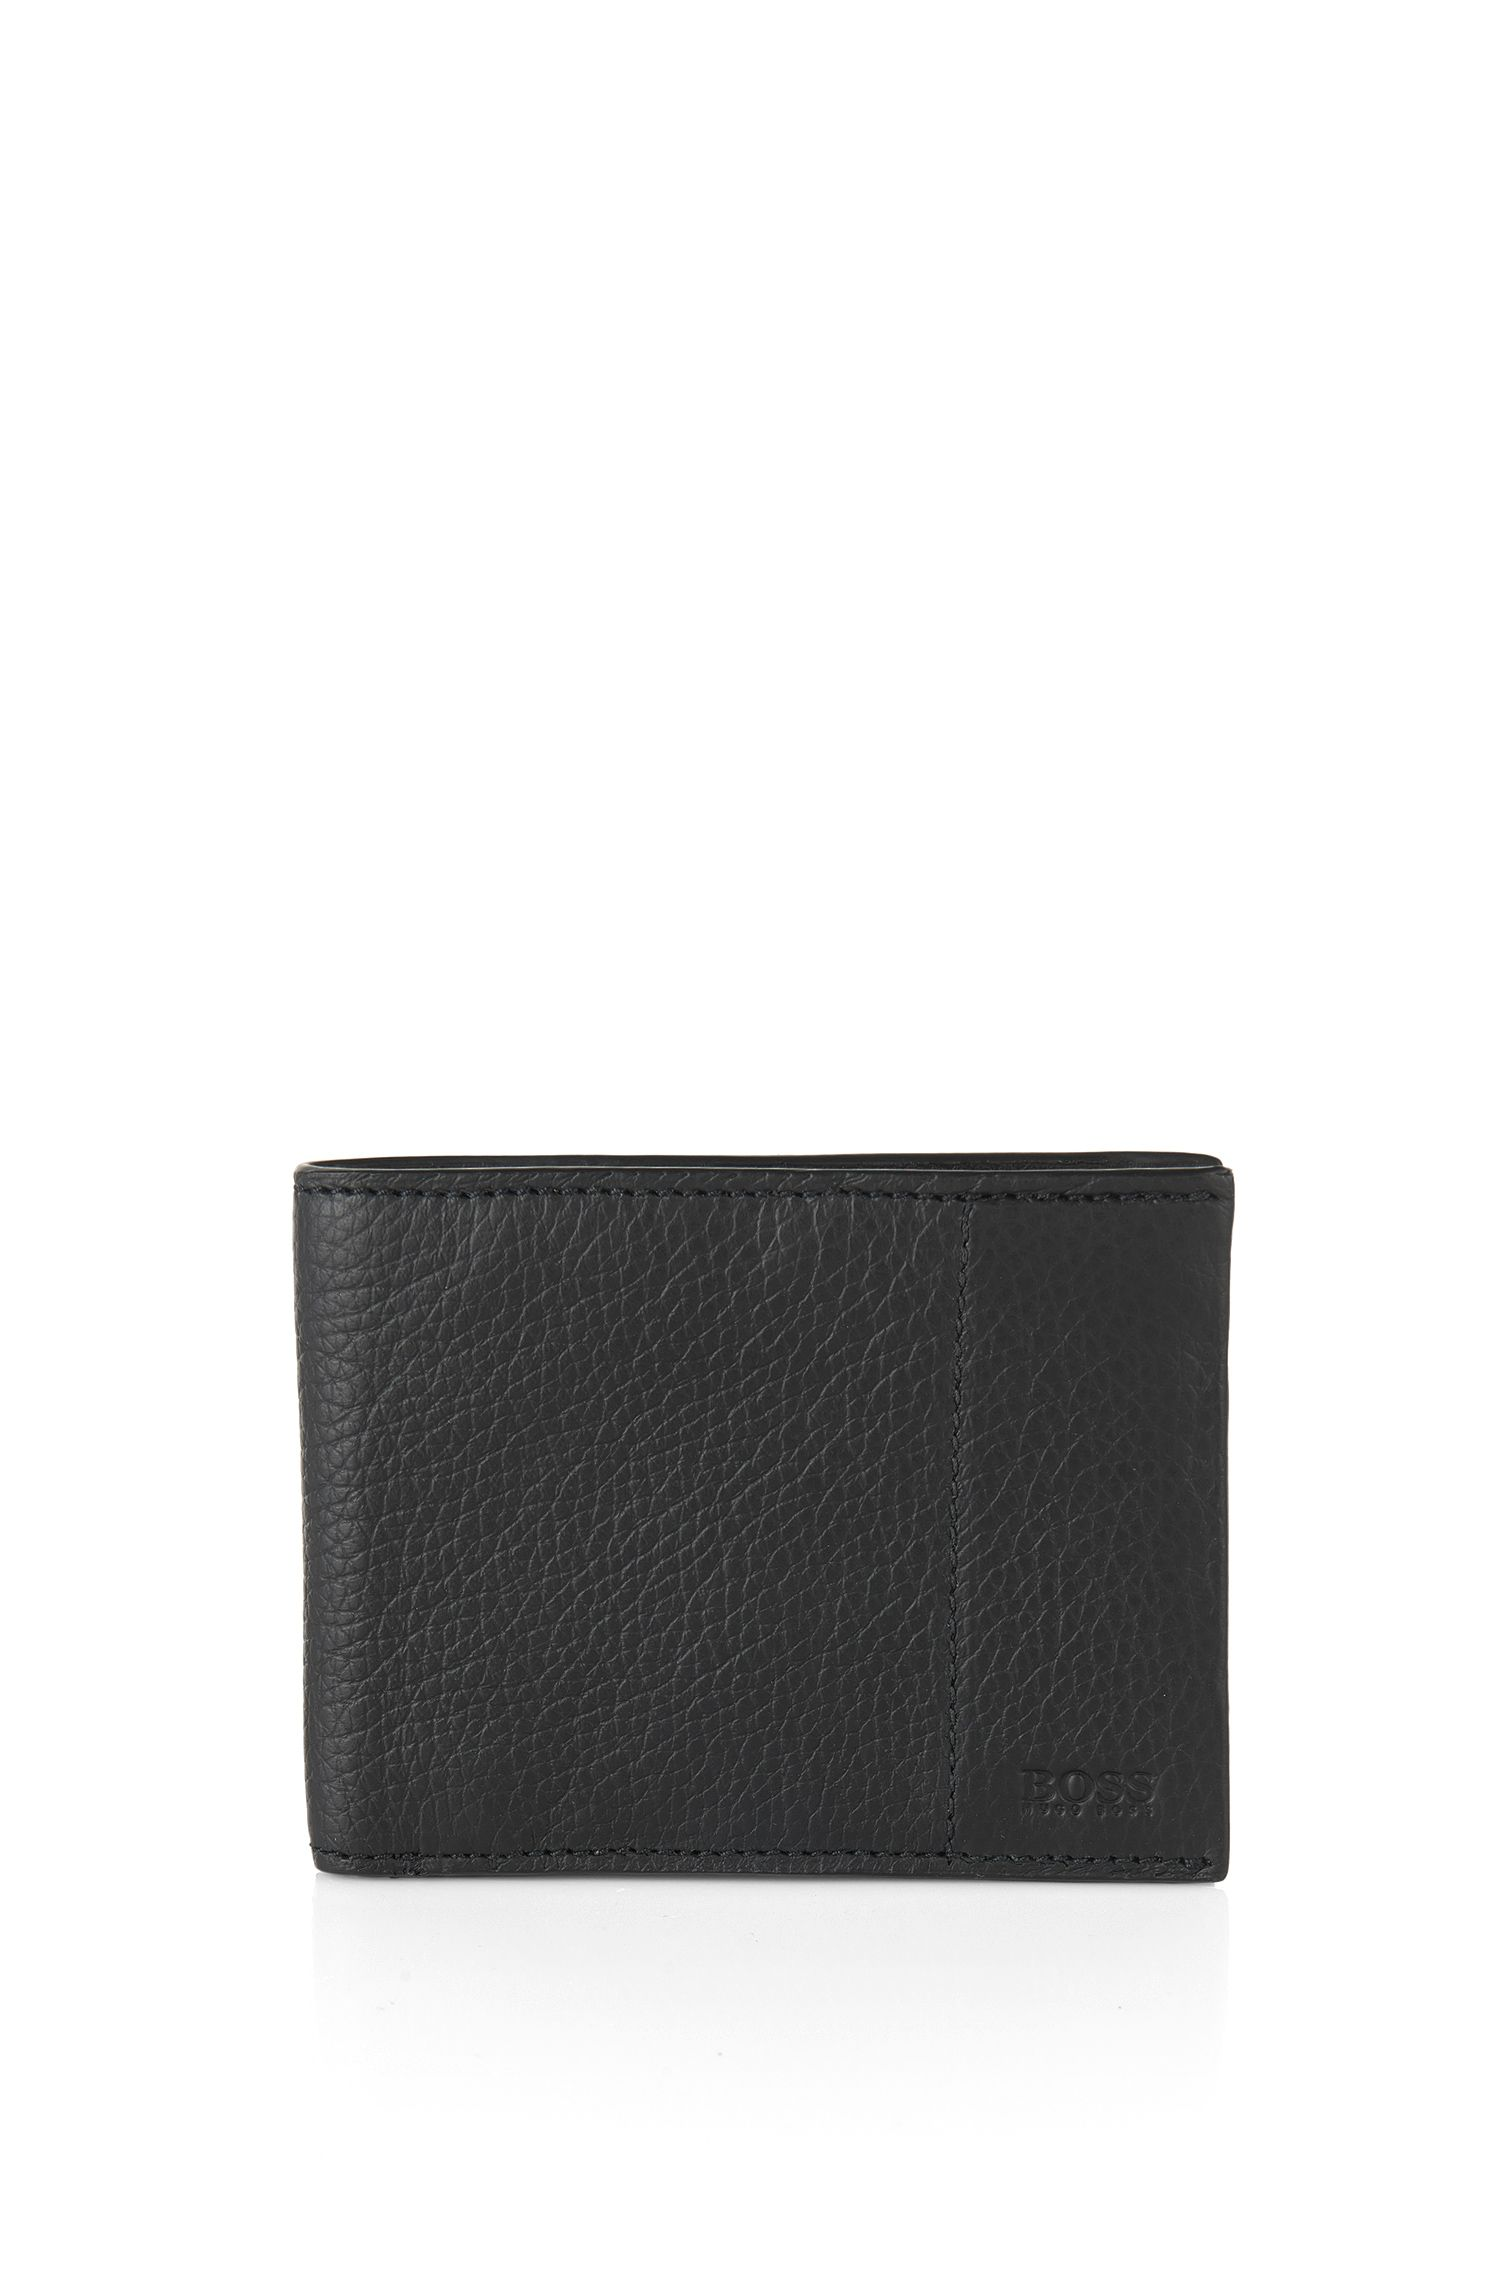 Leather Billfold Wallet | Traveller 6 CC